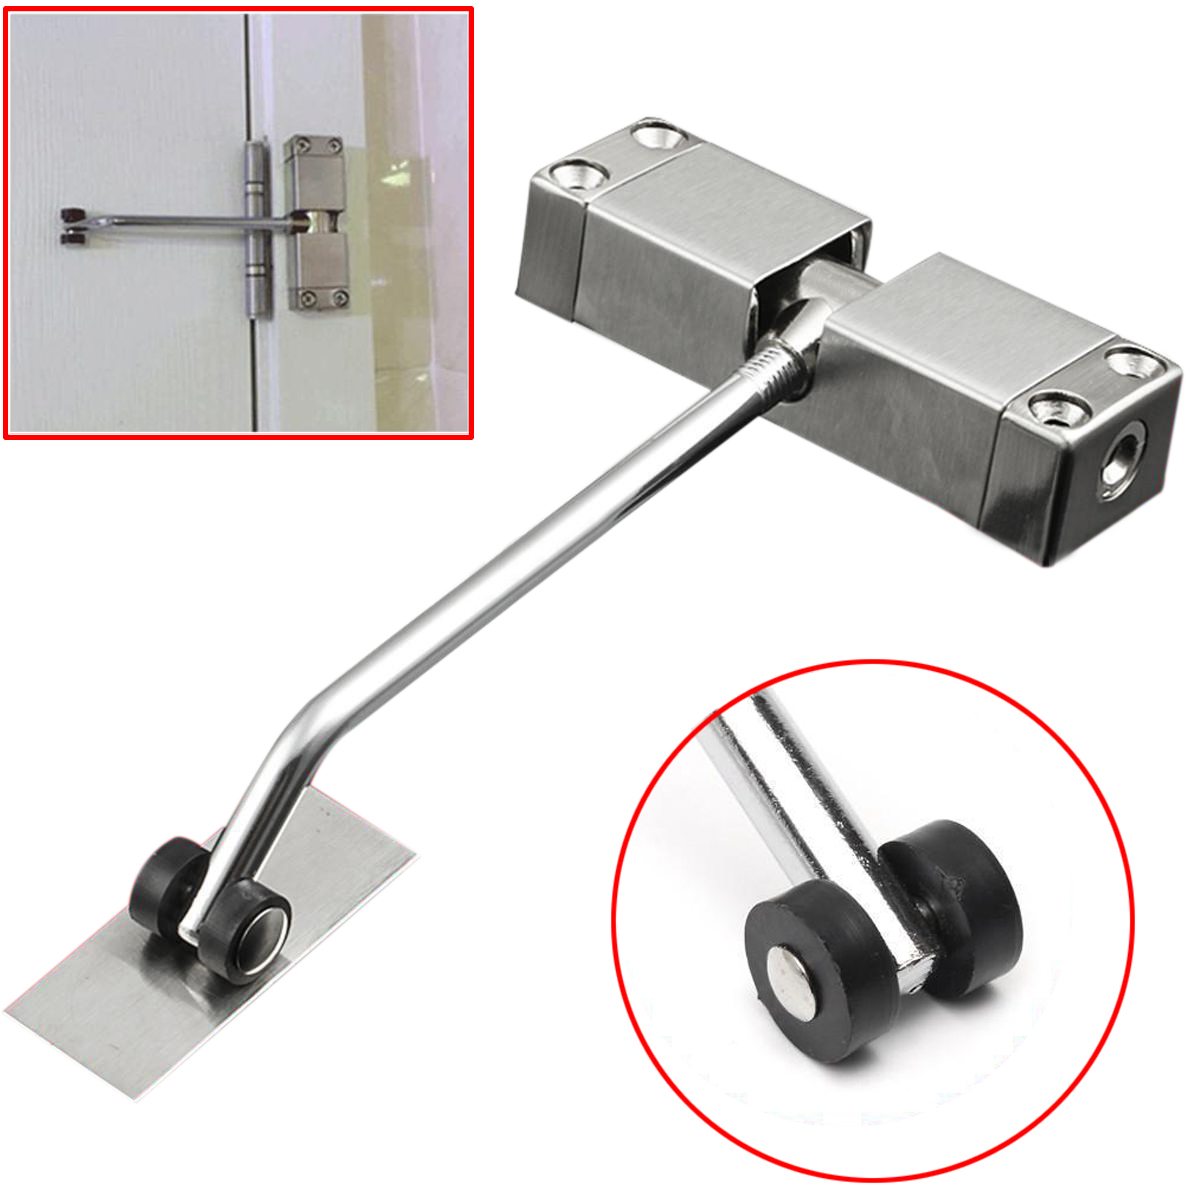 1pc Automatic Mounted Spring Door Closer Stainless Steel Adjustable Surface Door Closer 160x96x20mm 175 degrees Maximum angle 1pc automatic mounted spring door closer stainless steel adjustable surface door closer 160x96x20mm page 6